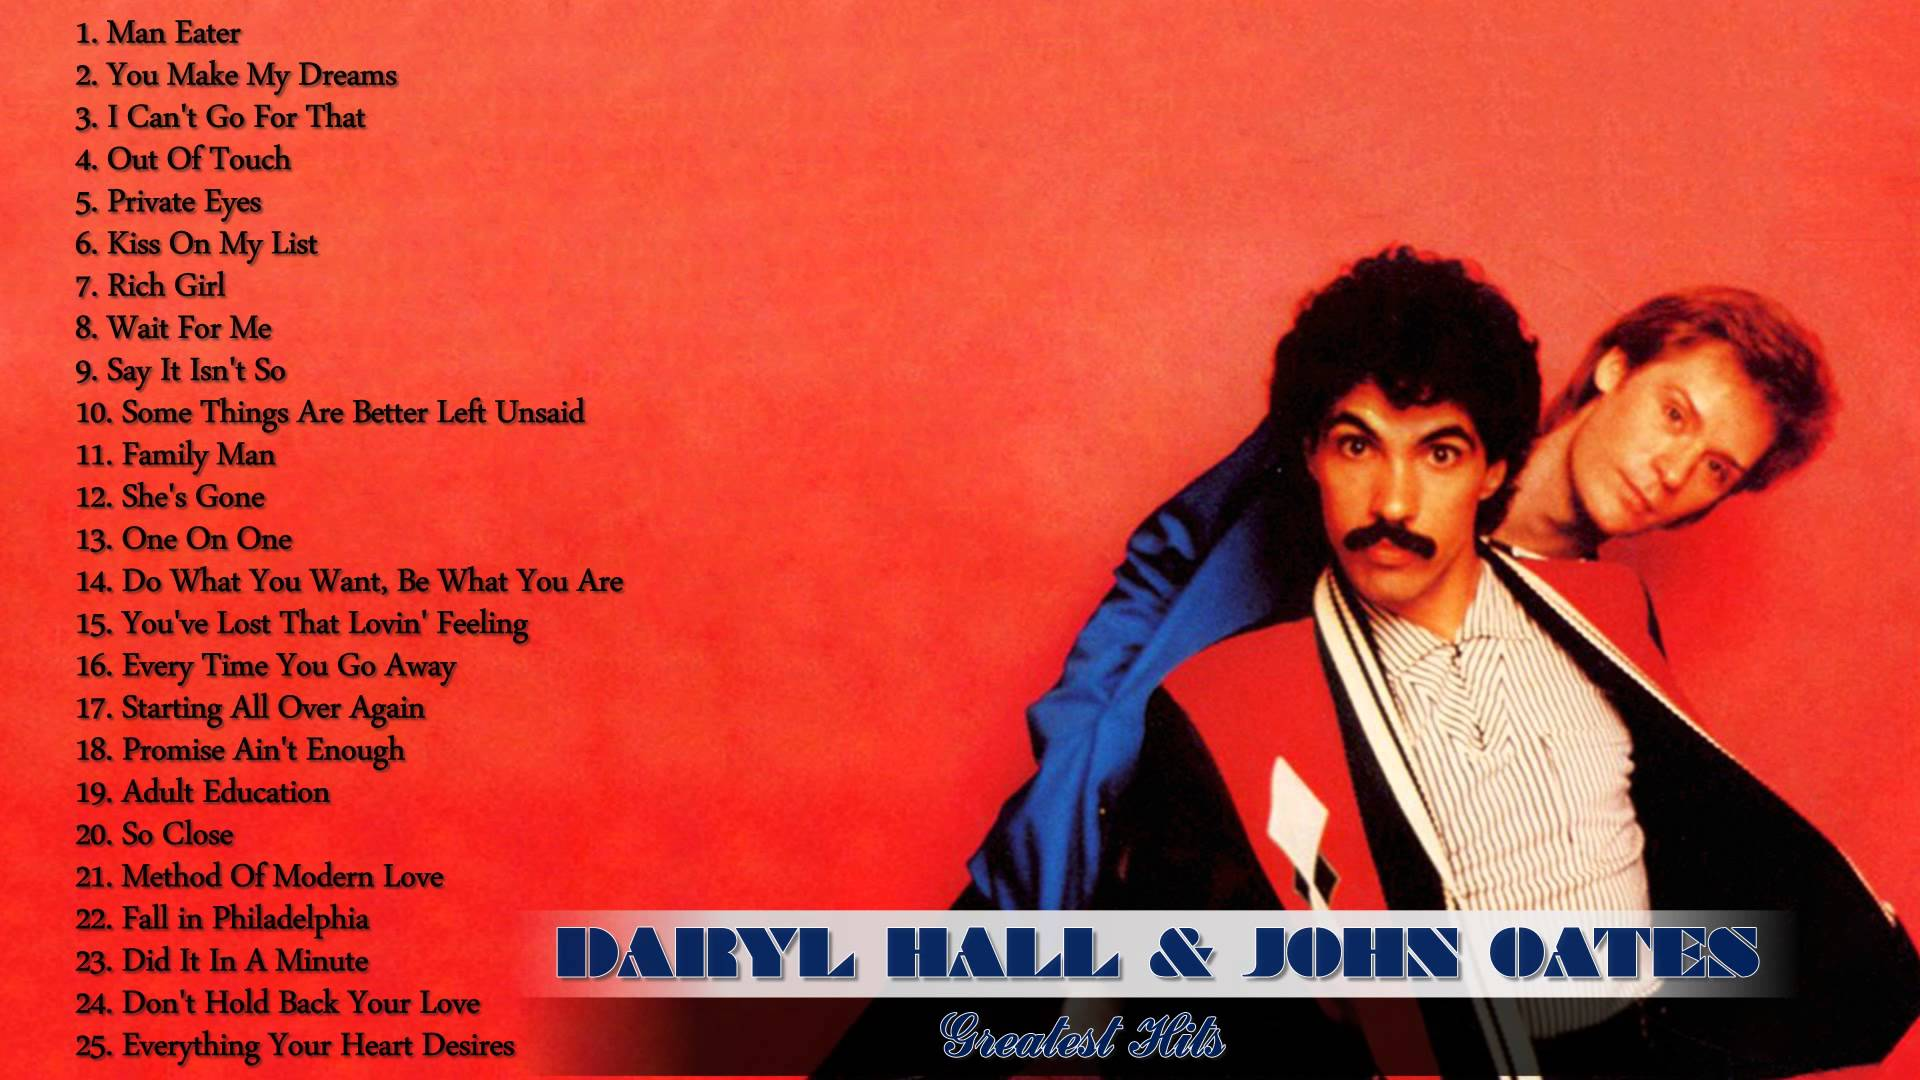 The Best Of Daryl Hall John Oates Trailers Photos And